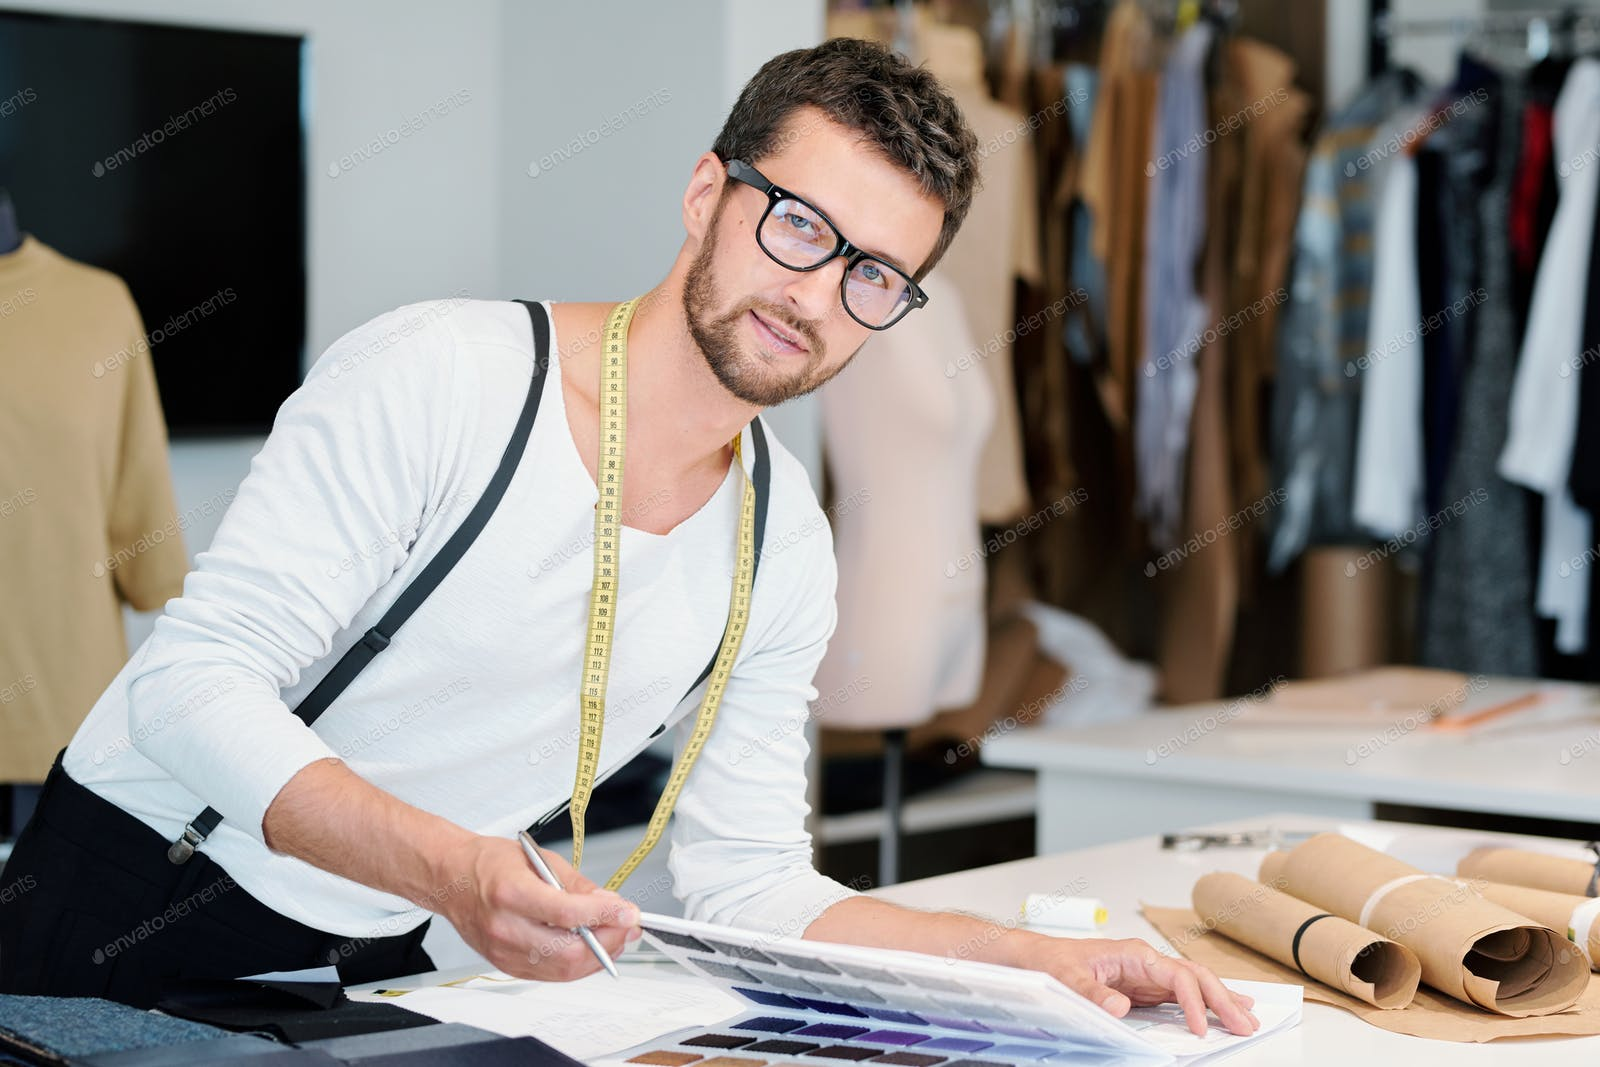 Young Professional Fashion Designer With Measuring Tape Looking At You Photo By Pressmaster On Envato Elements